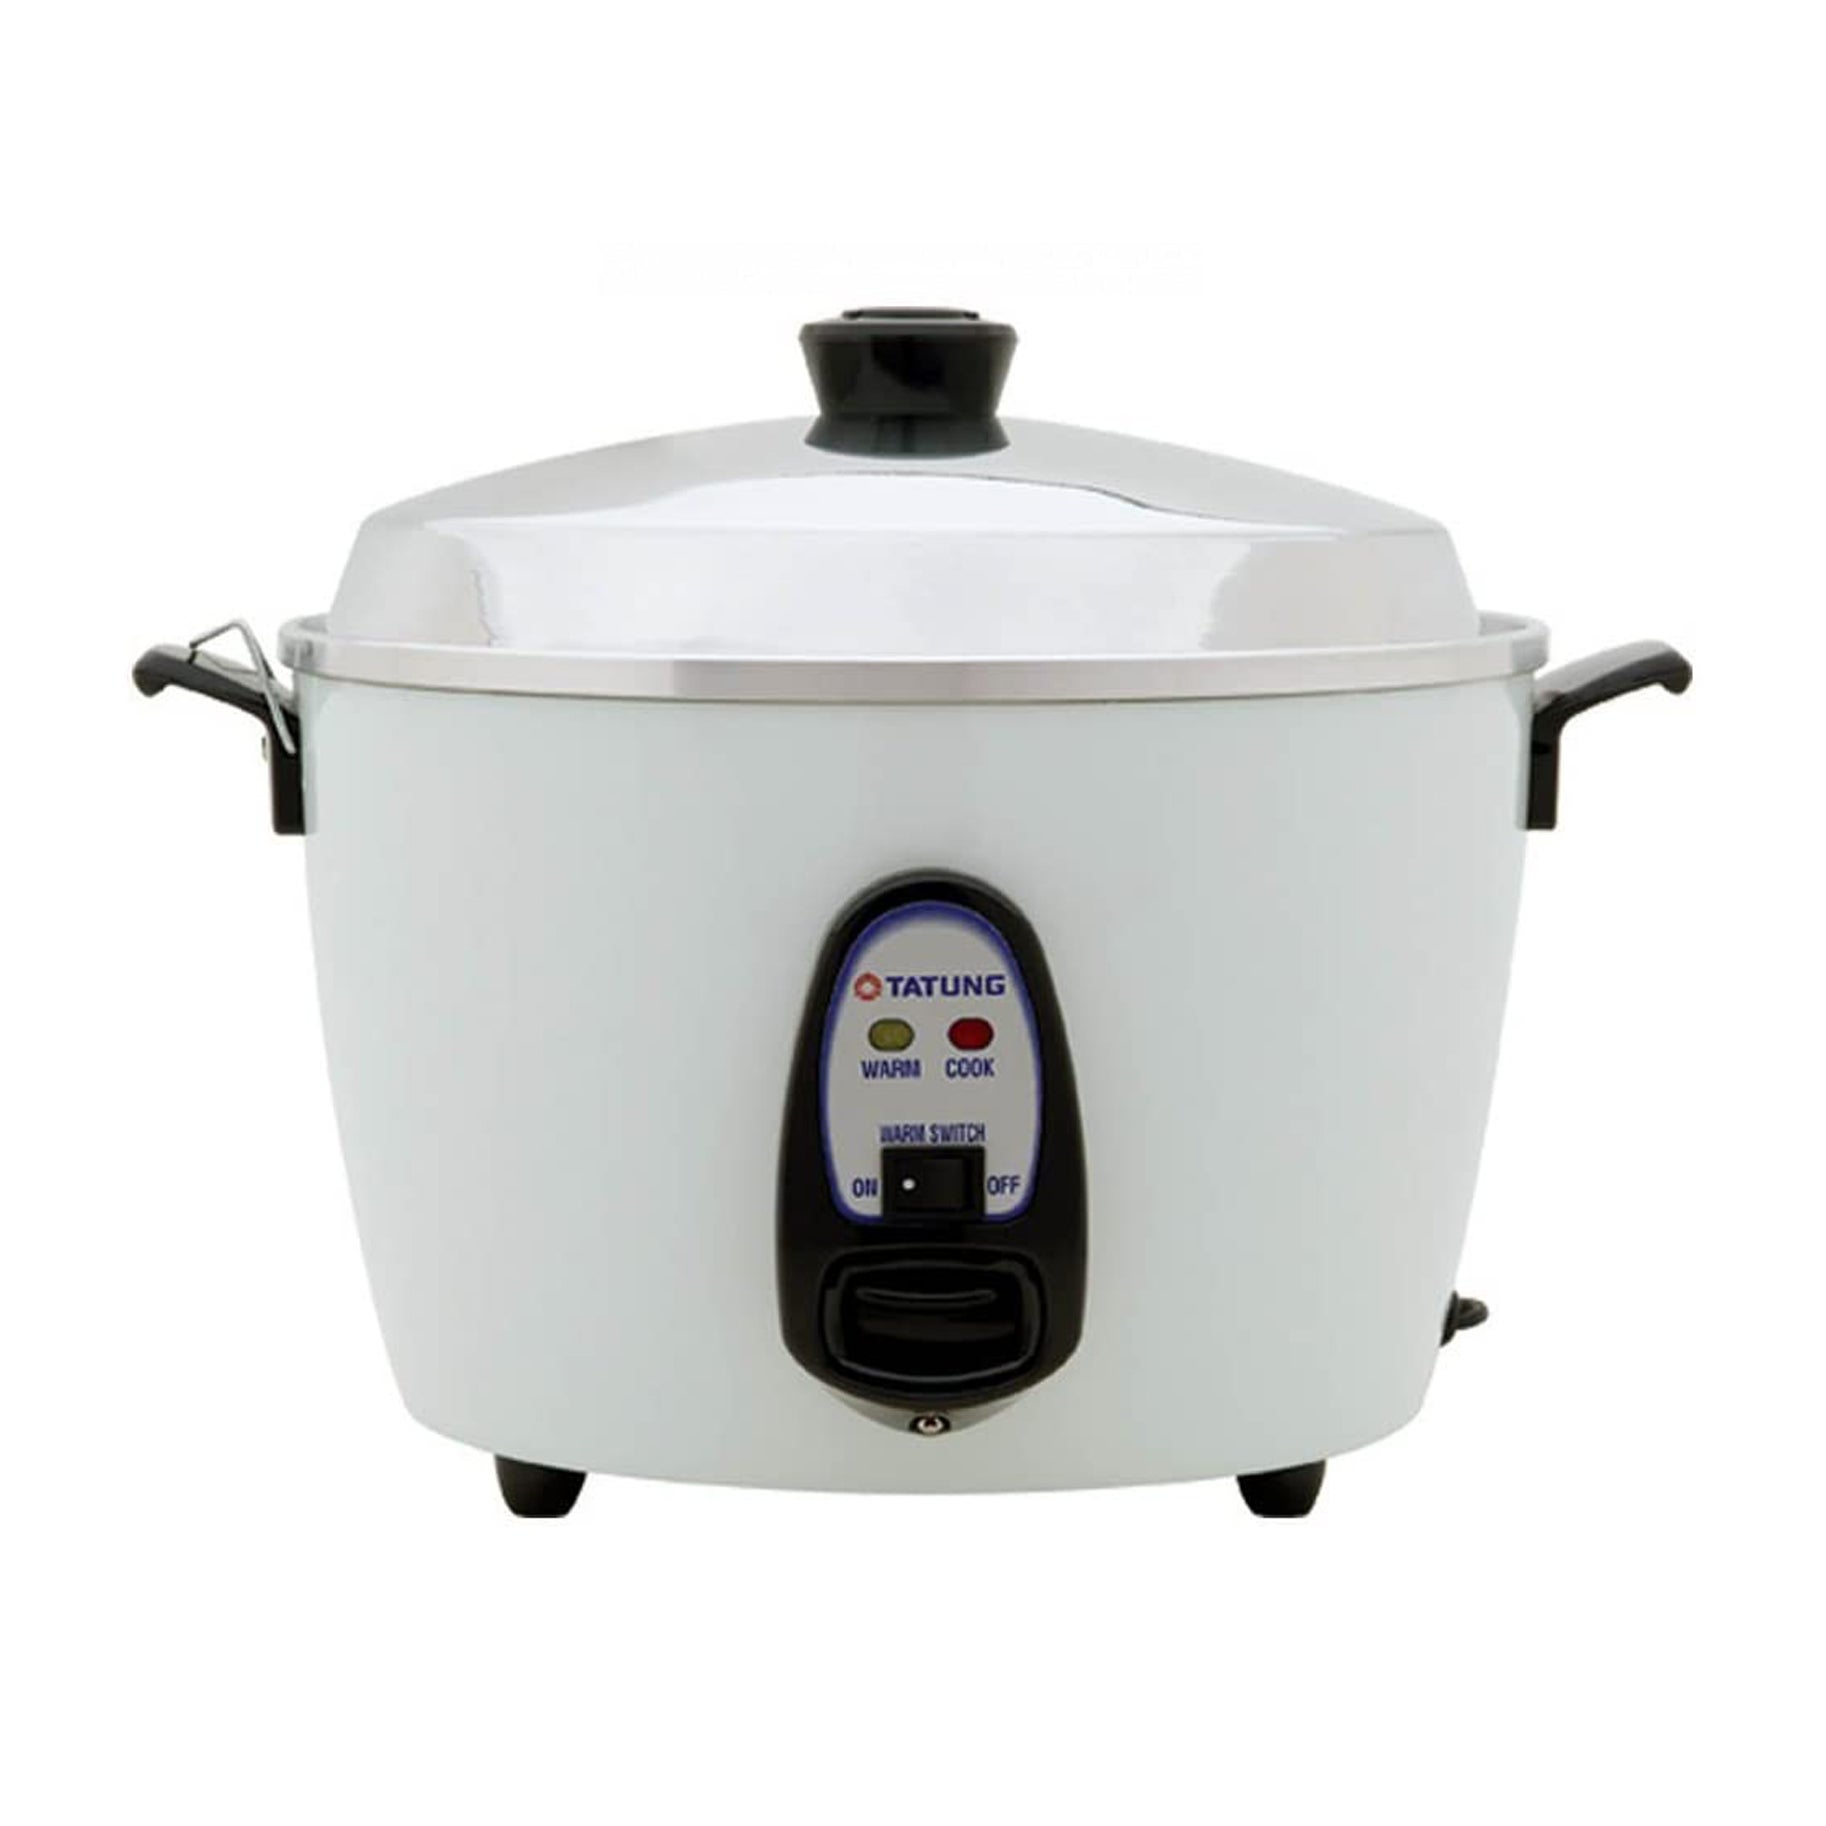 The Best Food Steamers Option: Tatung Rice Cooker